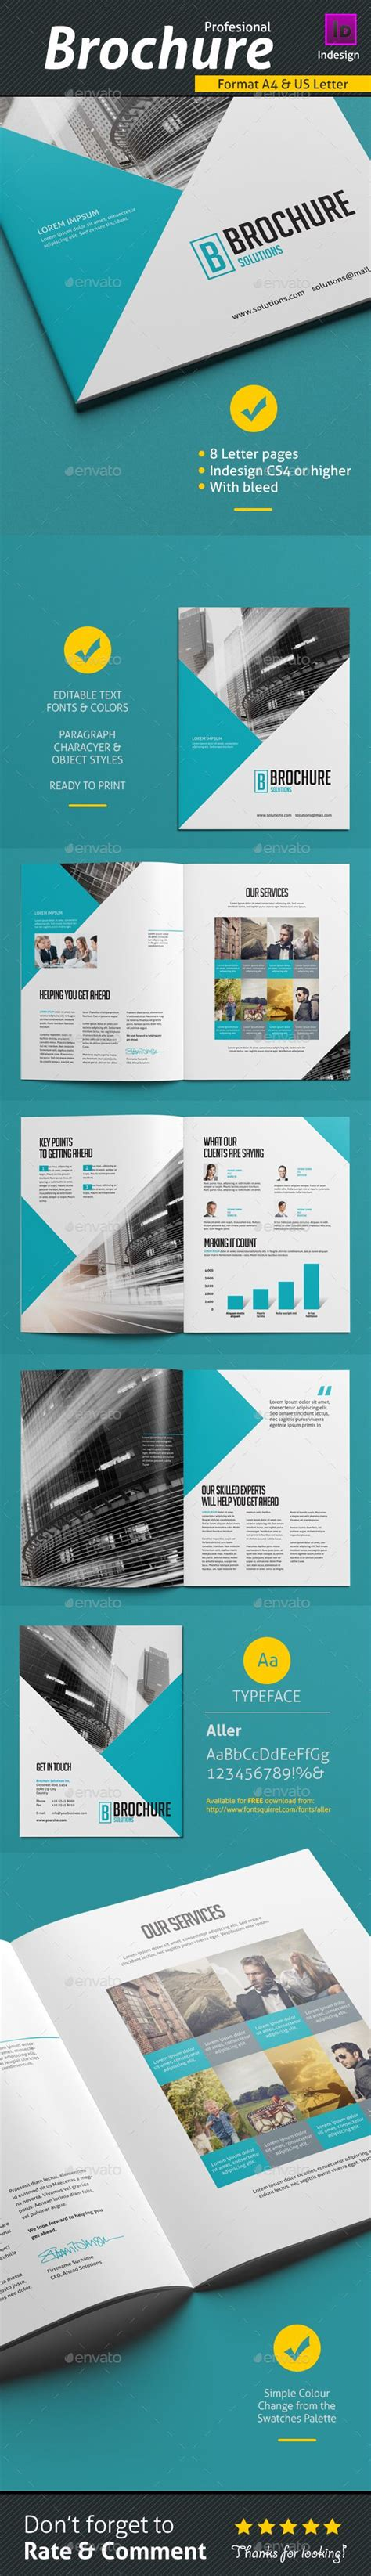 11 Best Conferences Images On Pinterest Brochures Conference Agenda And Design Conference Conference Agenda Template Indesign